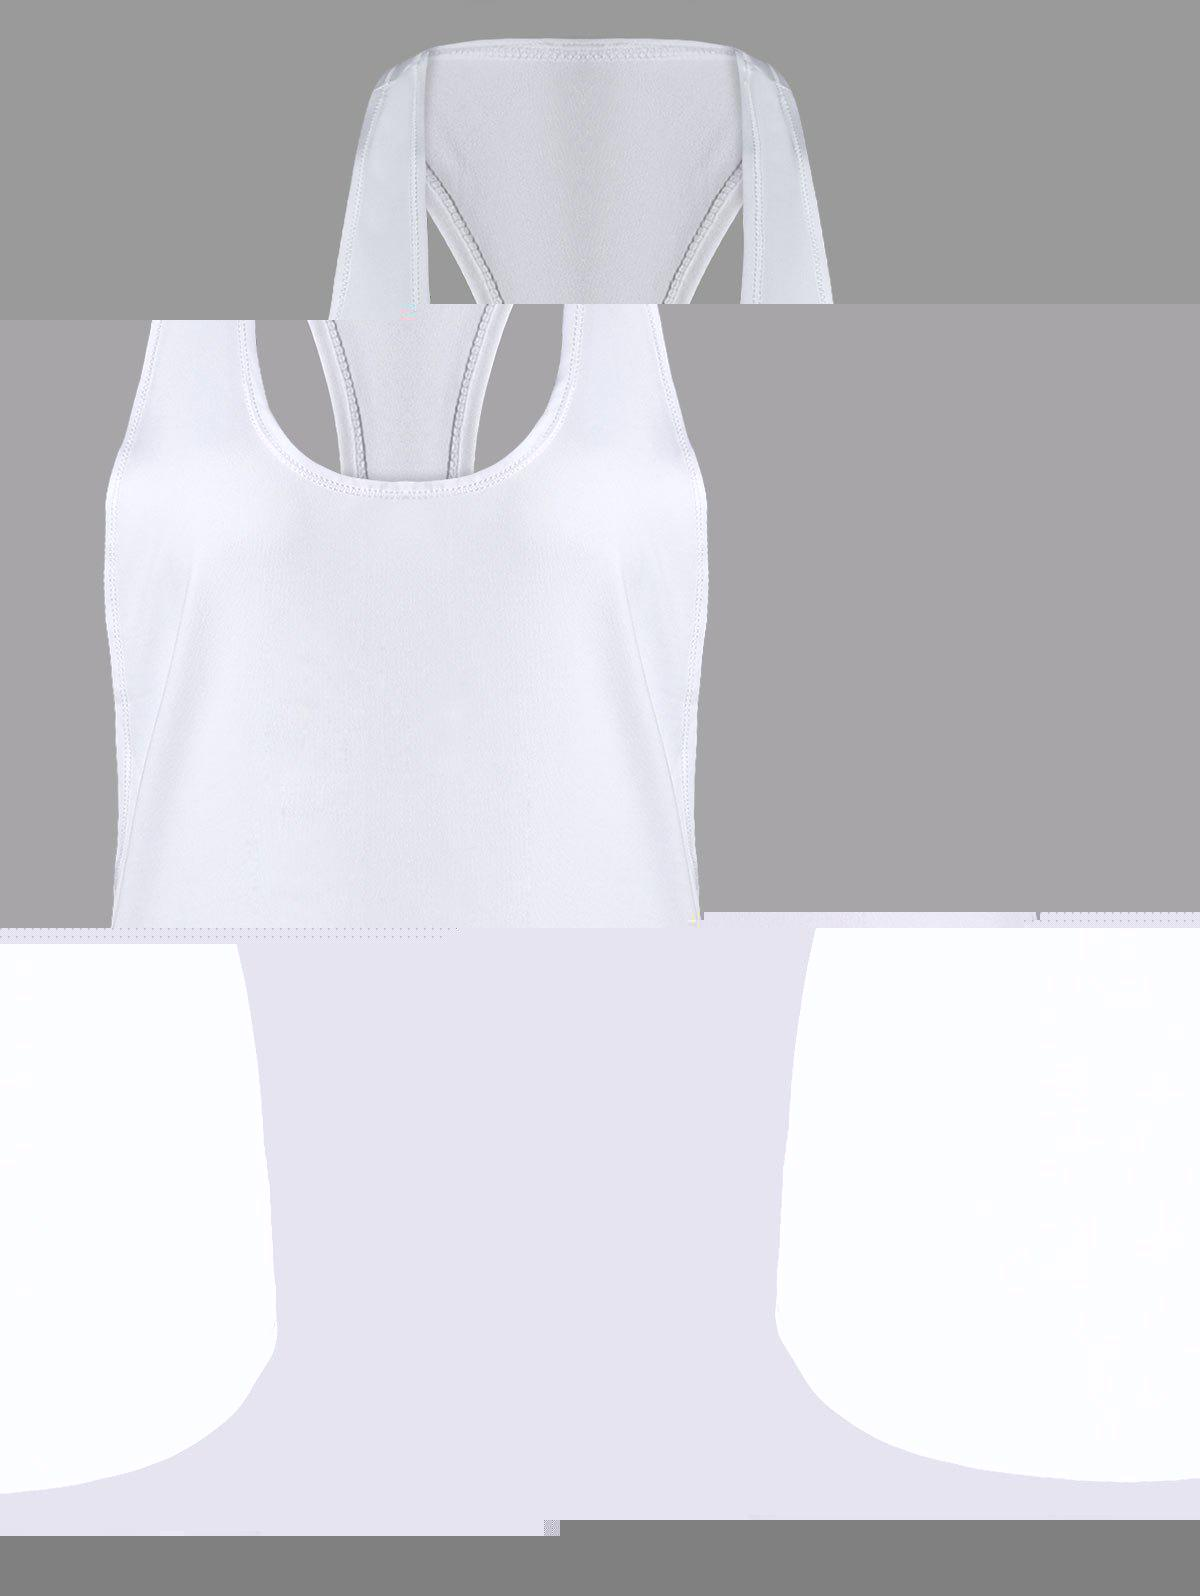 Sports Racerback Running Vest - Blanc XL